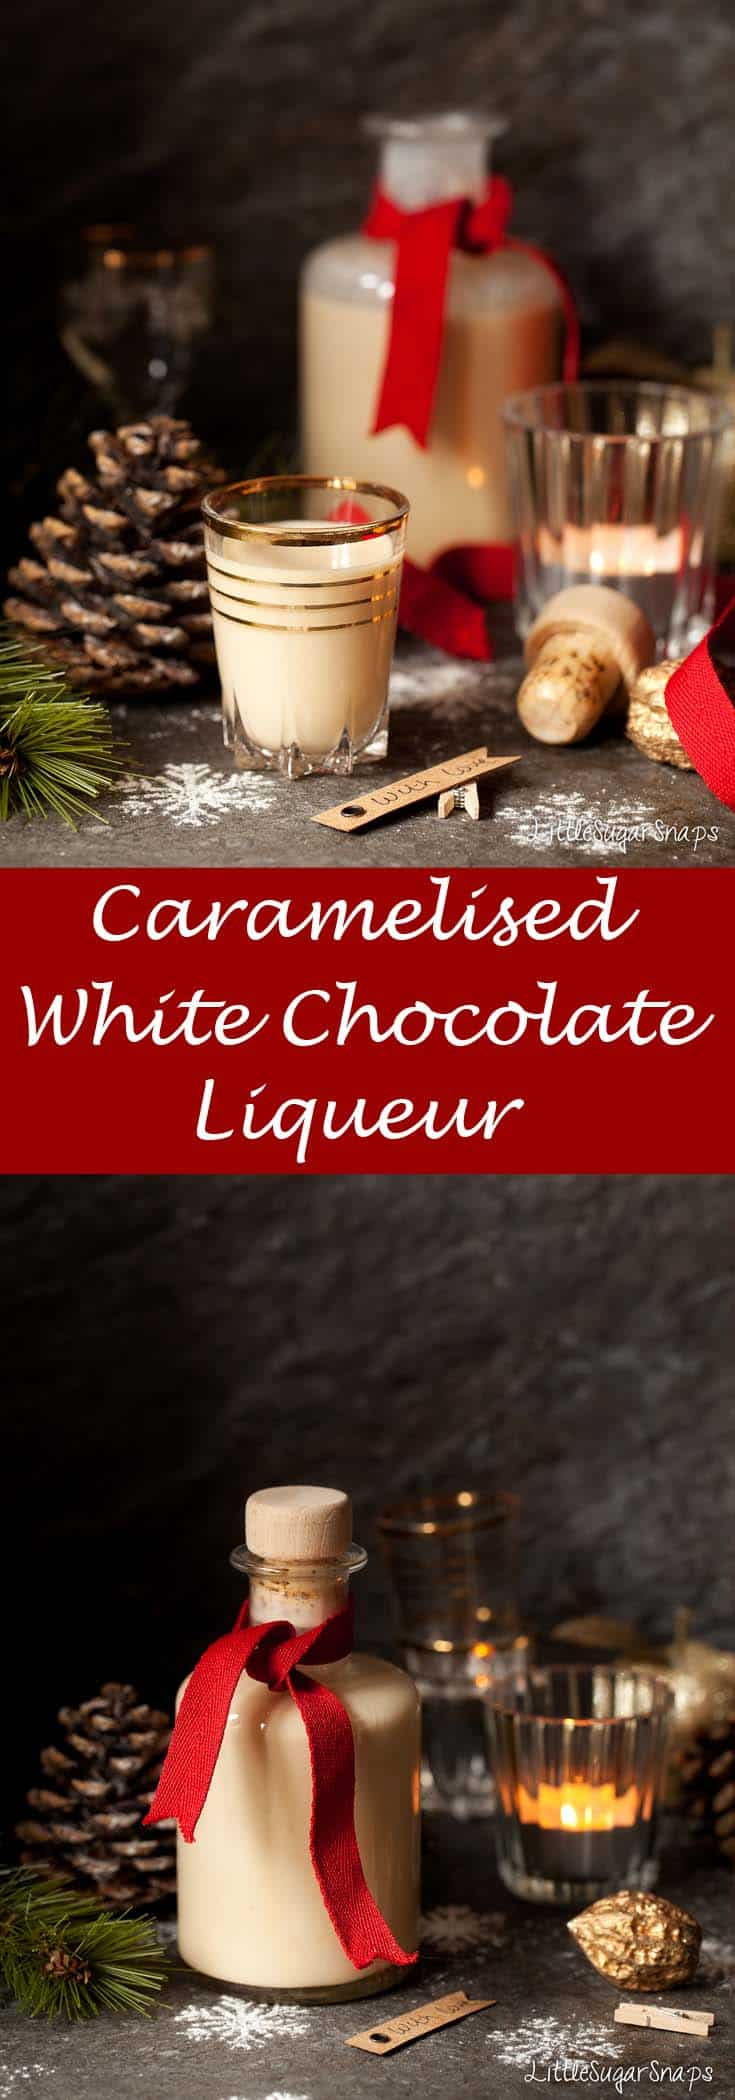 Caramelised White Chocolate Liqueur #ChocolateLiqueur #CaramelisedWhiteChocolate #CaramelizedWhiteChocolate #WhiteChocolateLiqueur